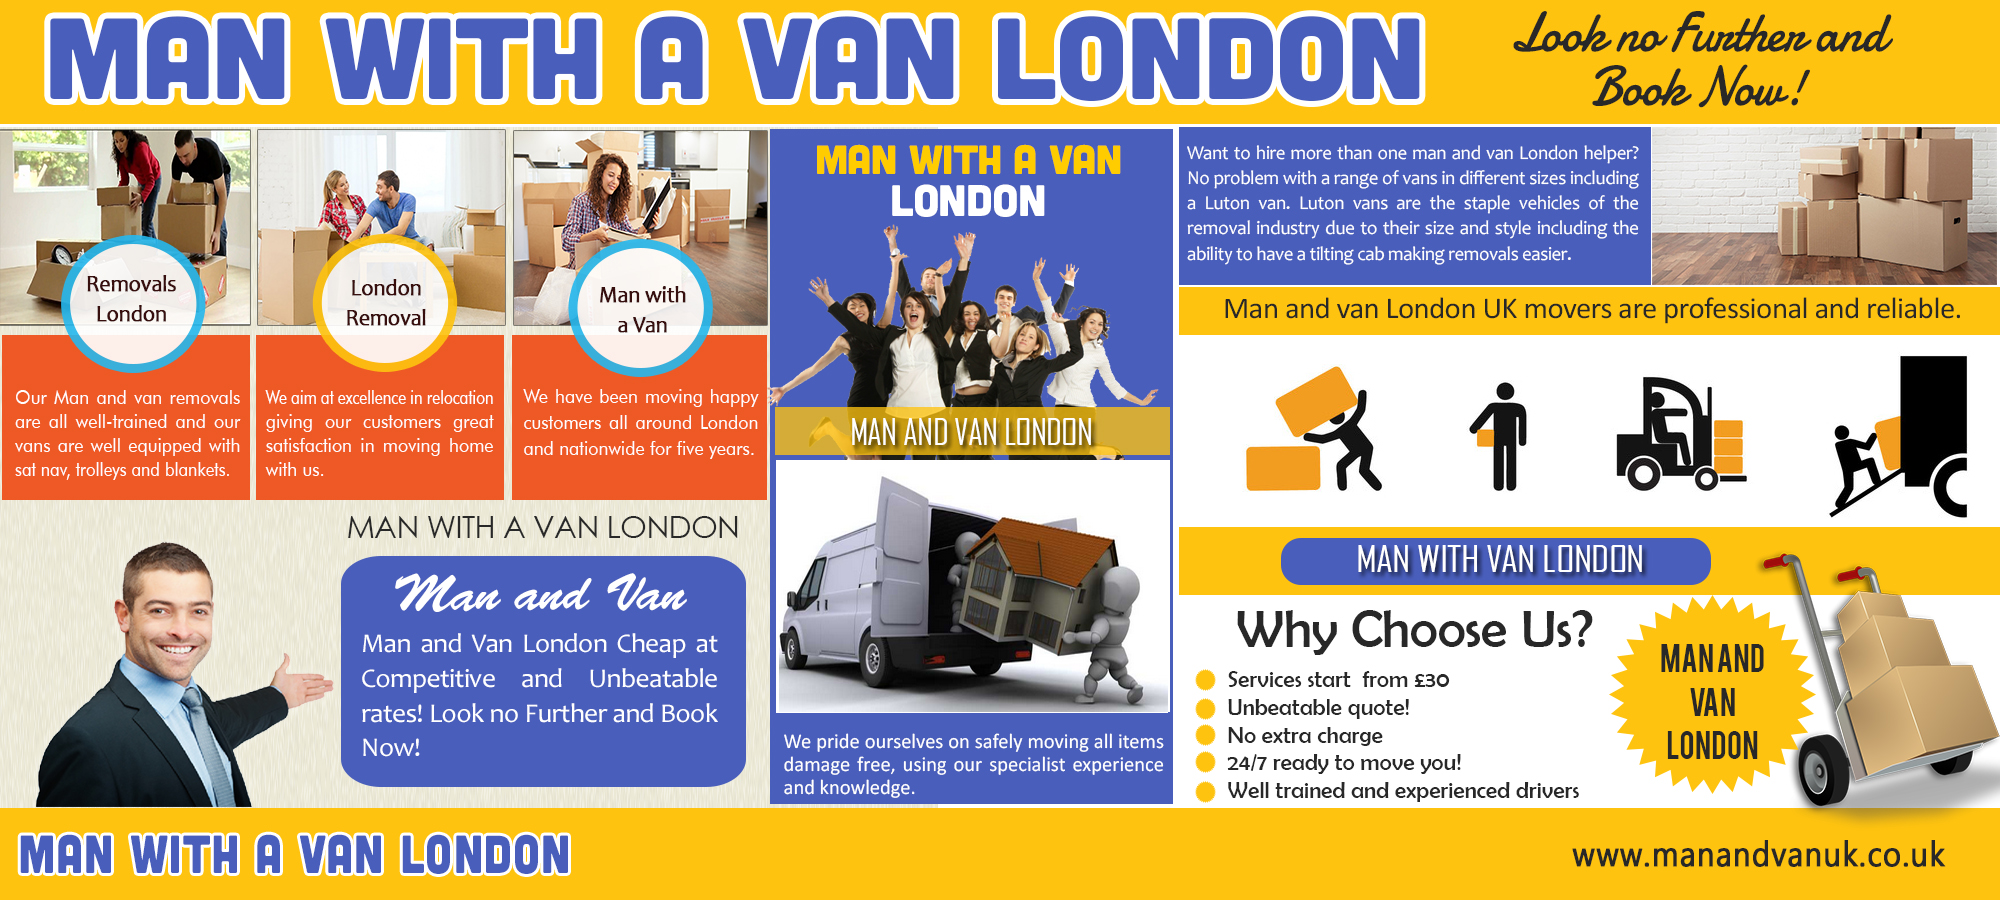 Man With Van London